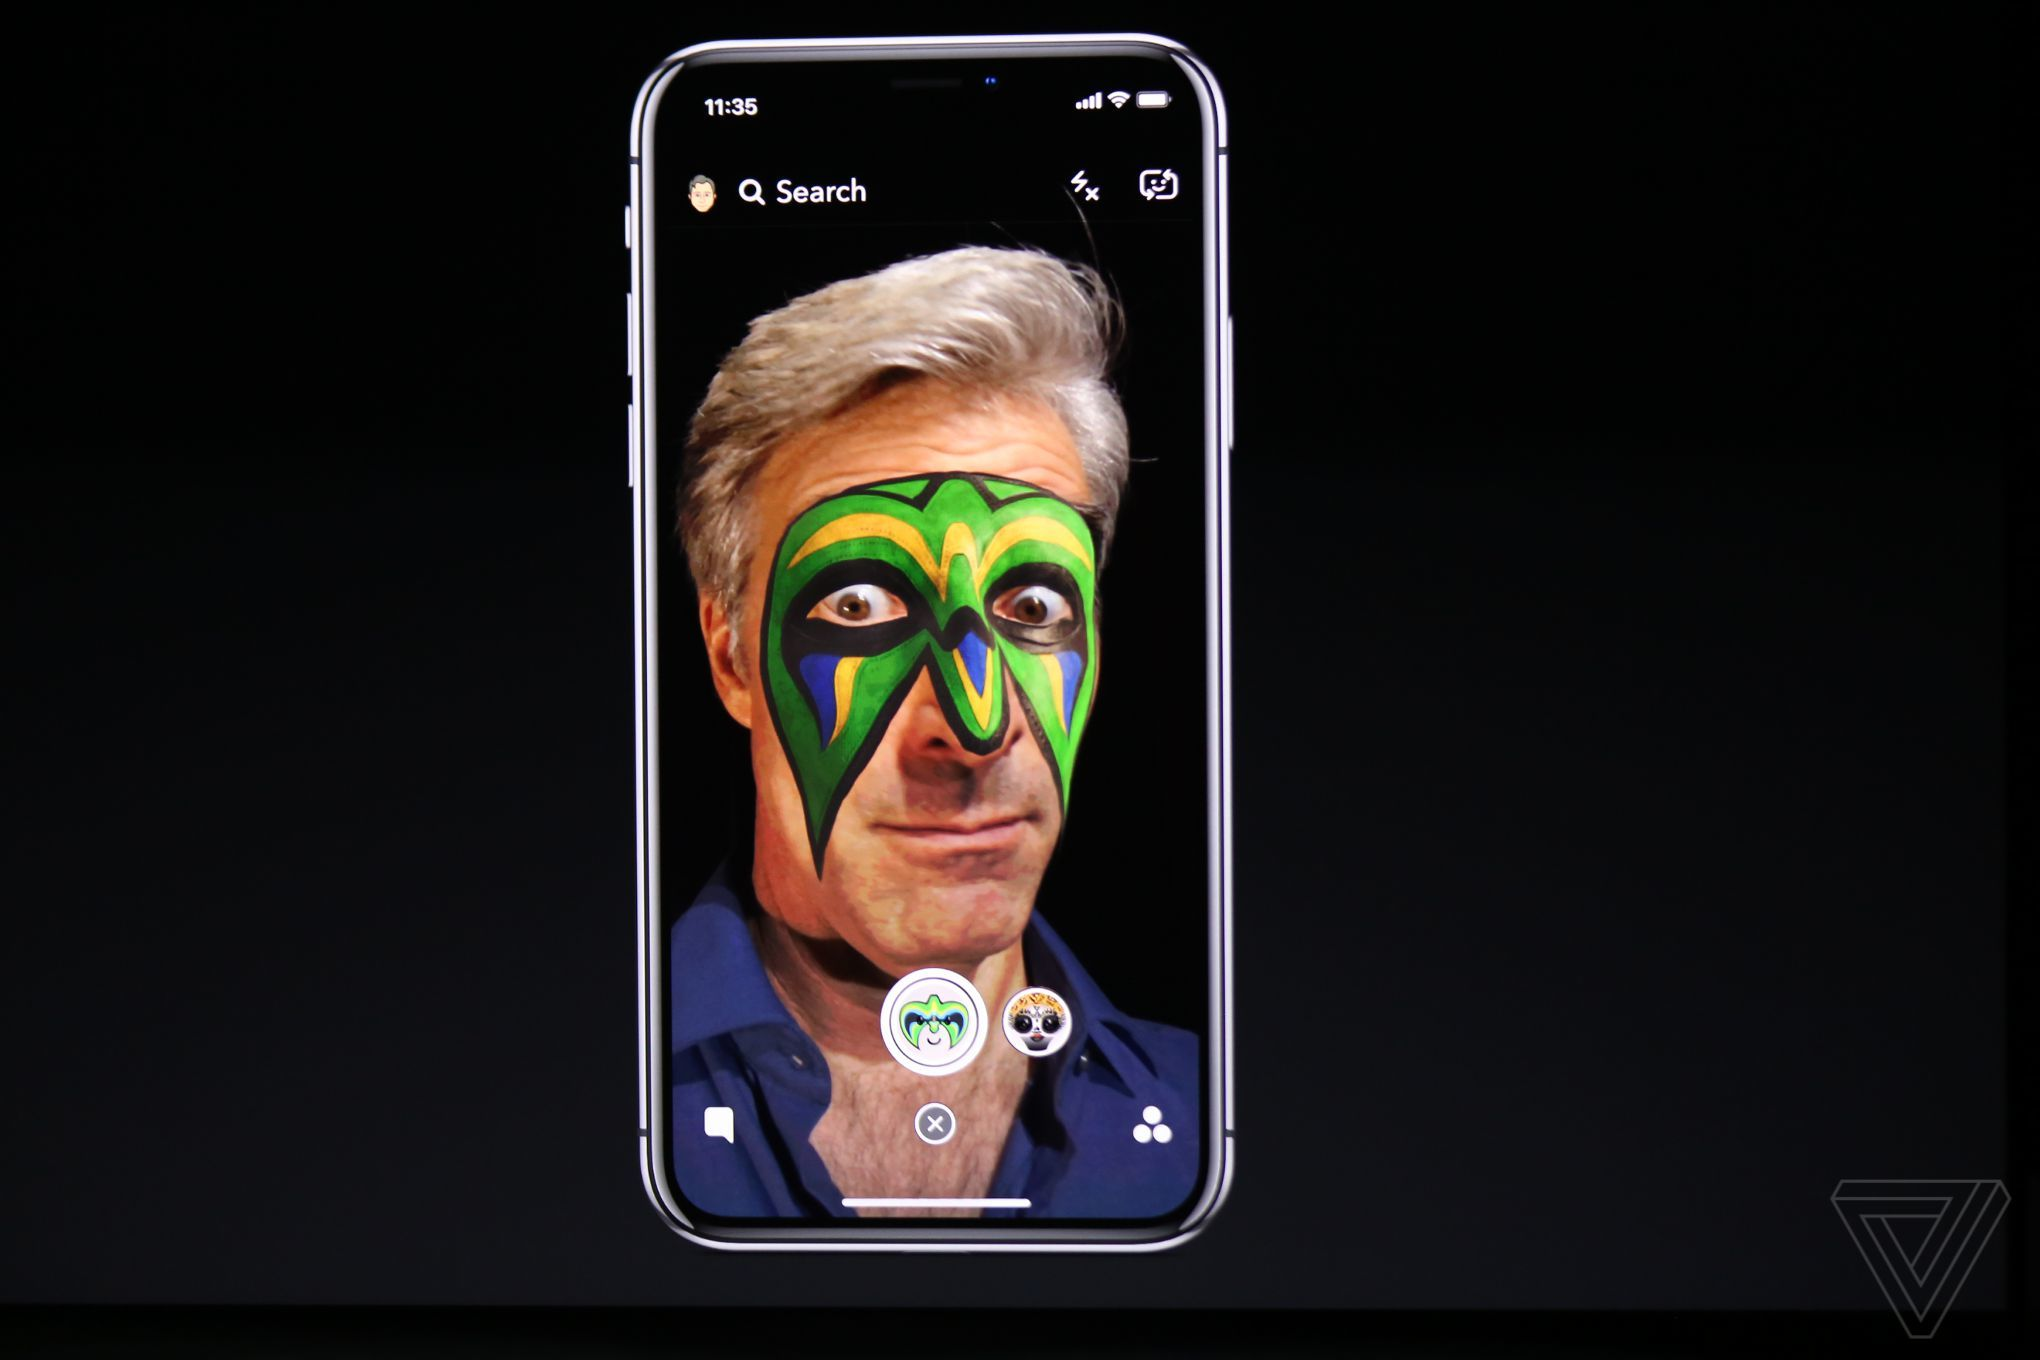 The iPhone X from an Android user's perspective